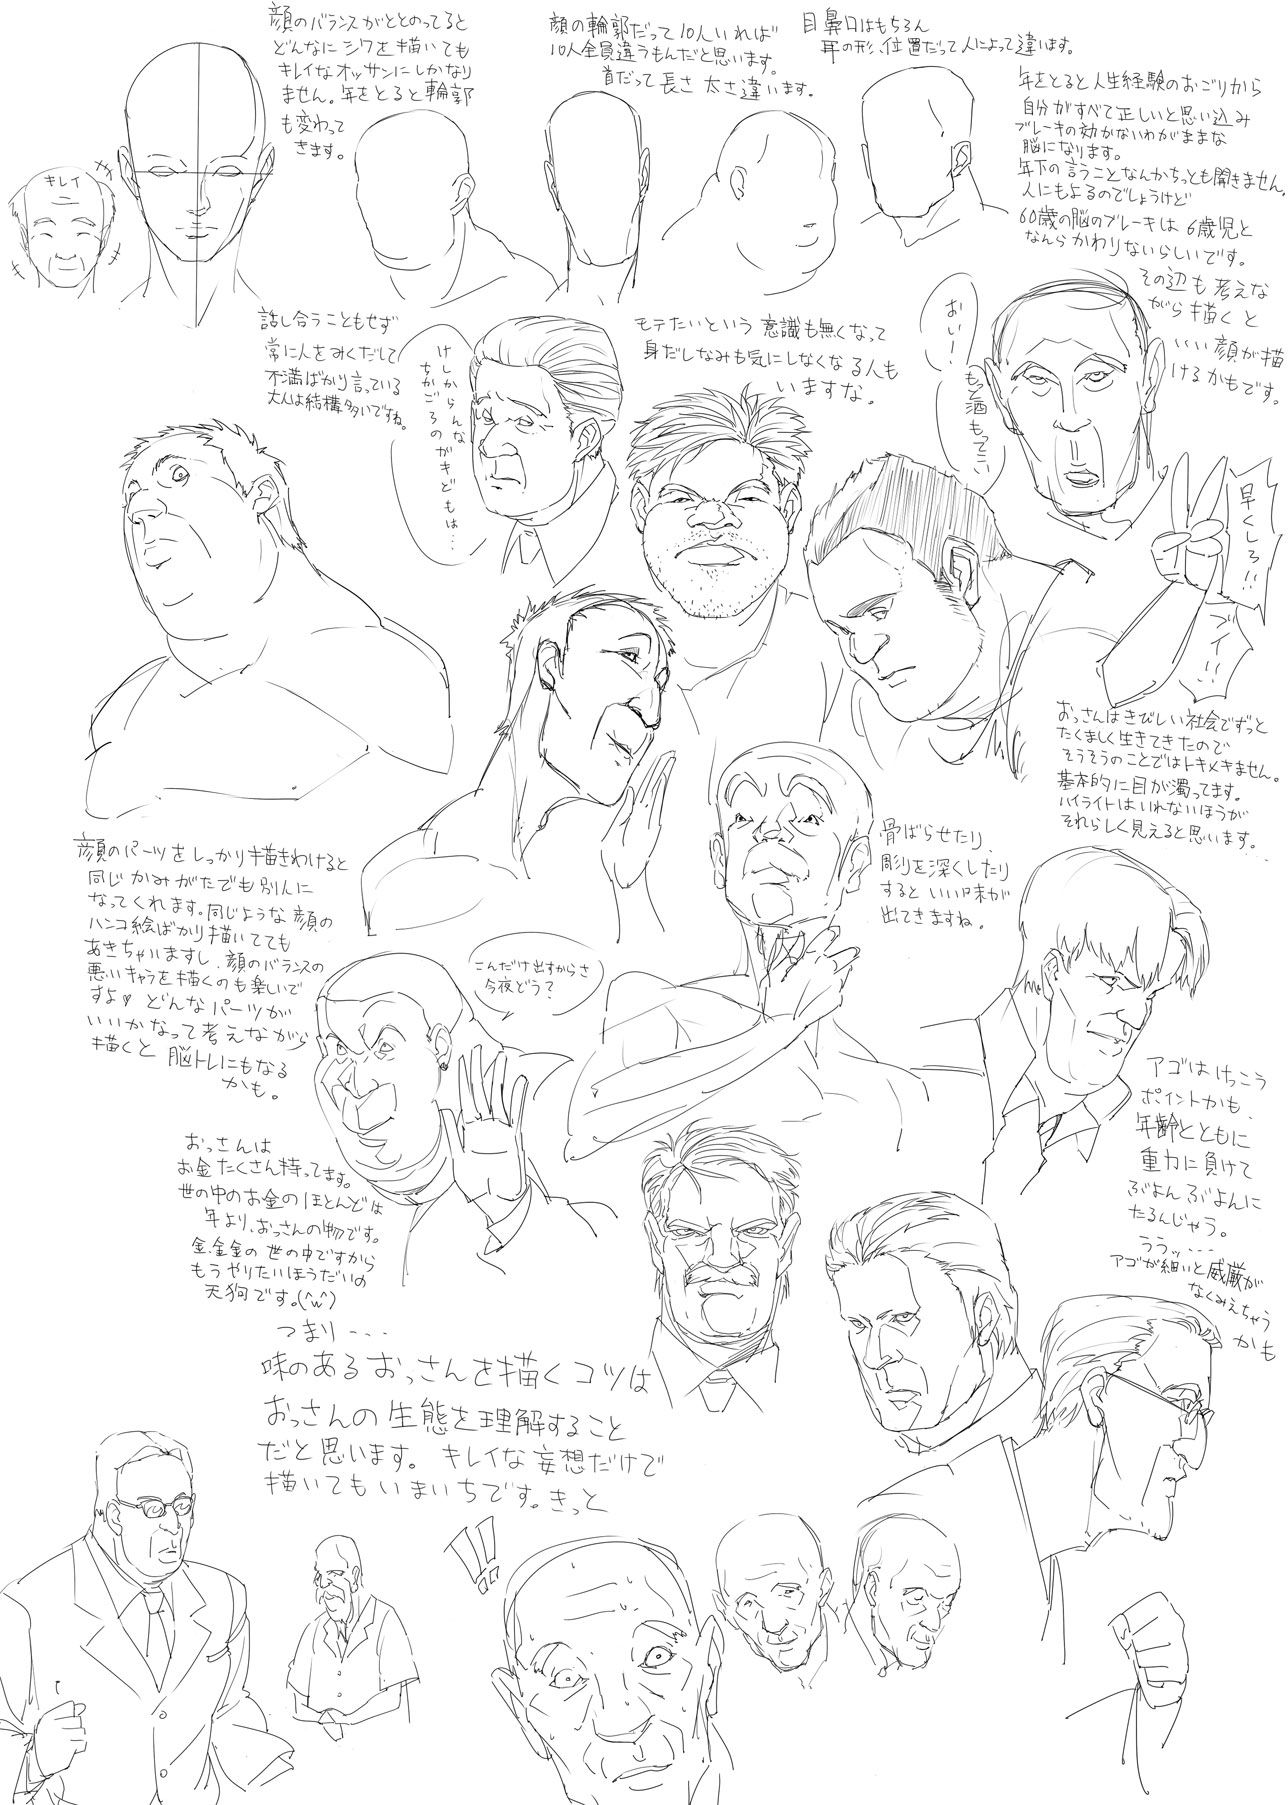 【Animation, Comic & Character Design PIctures】 (https